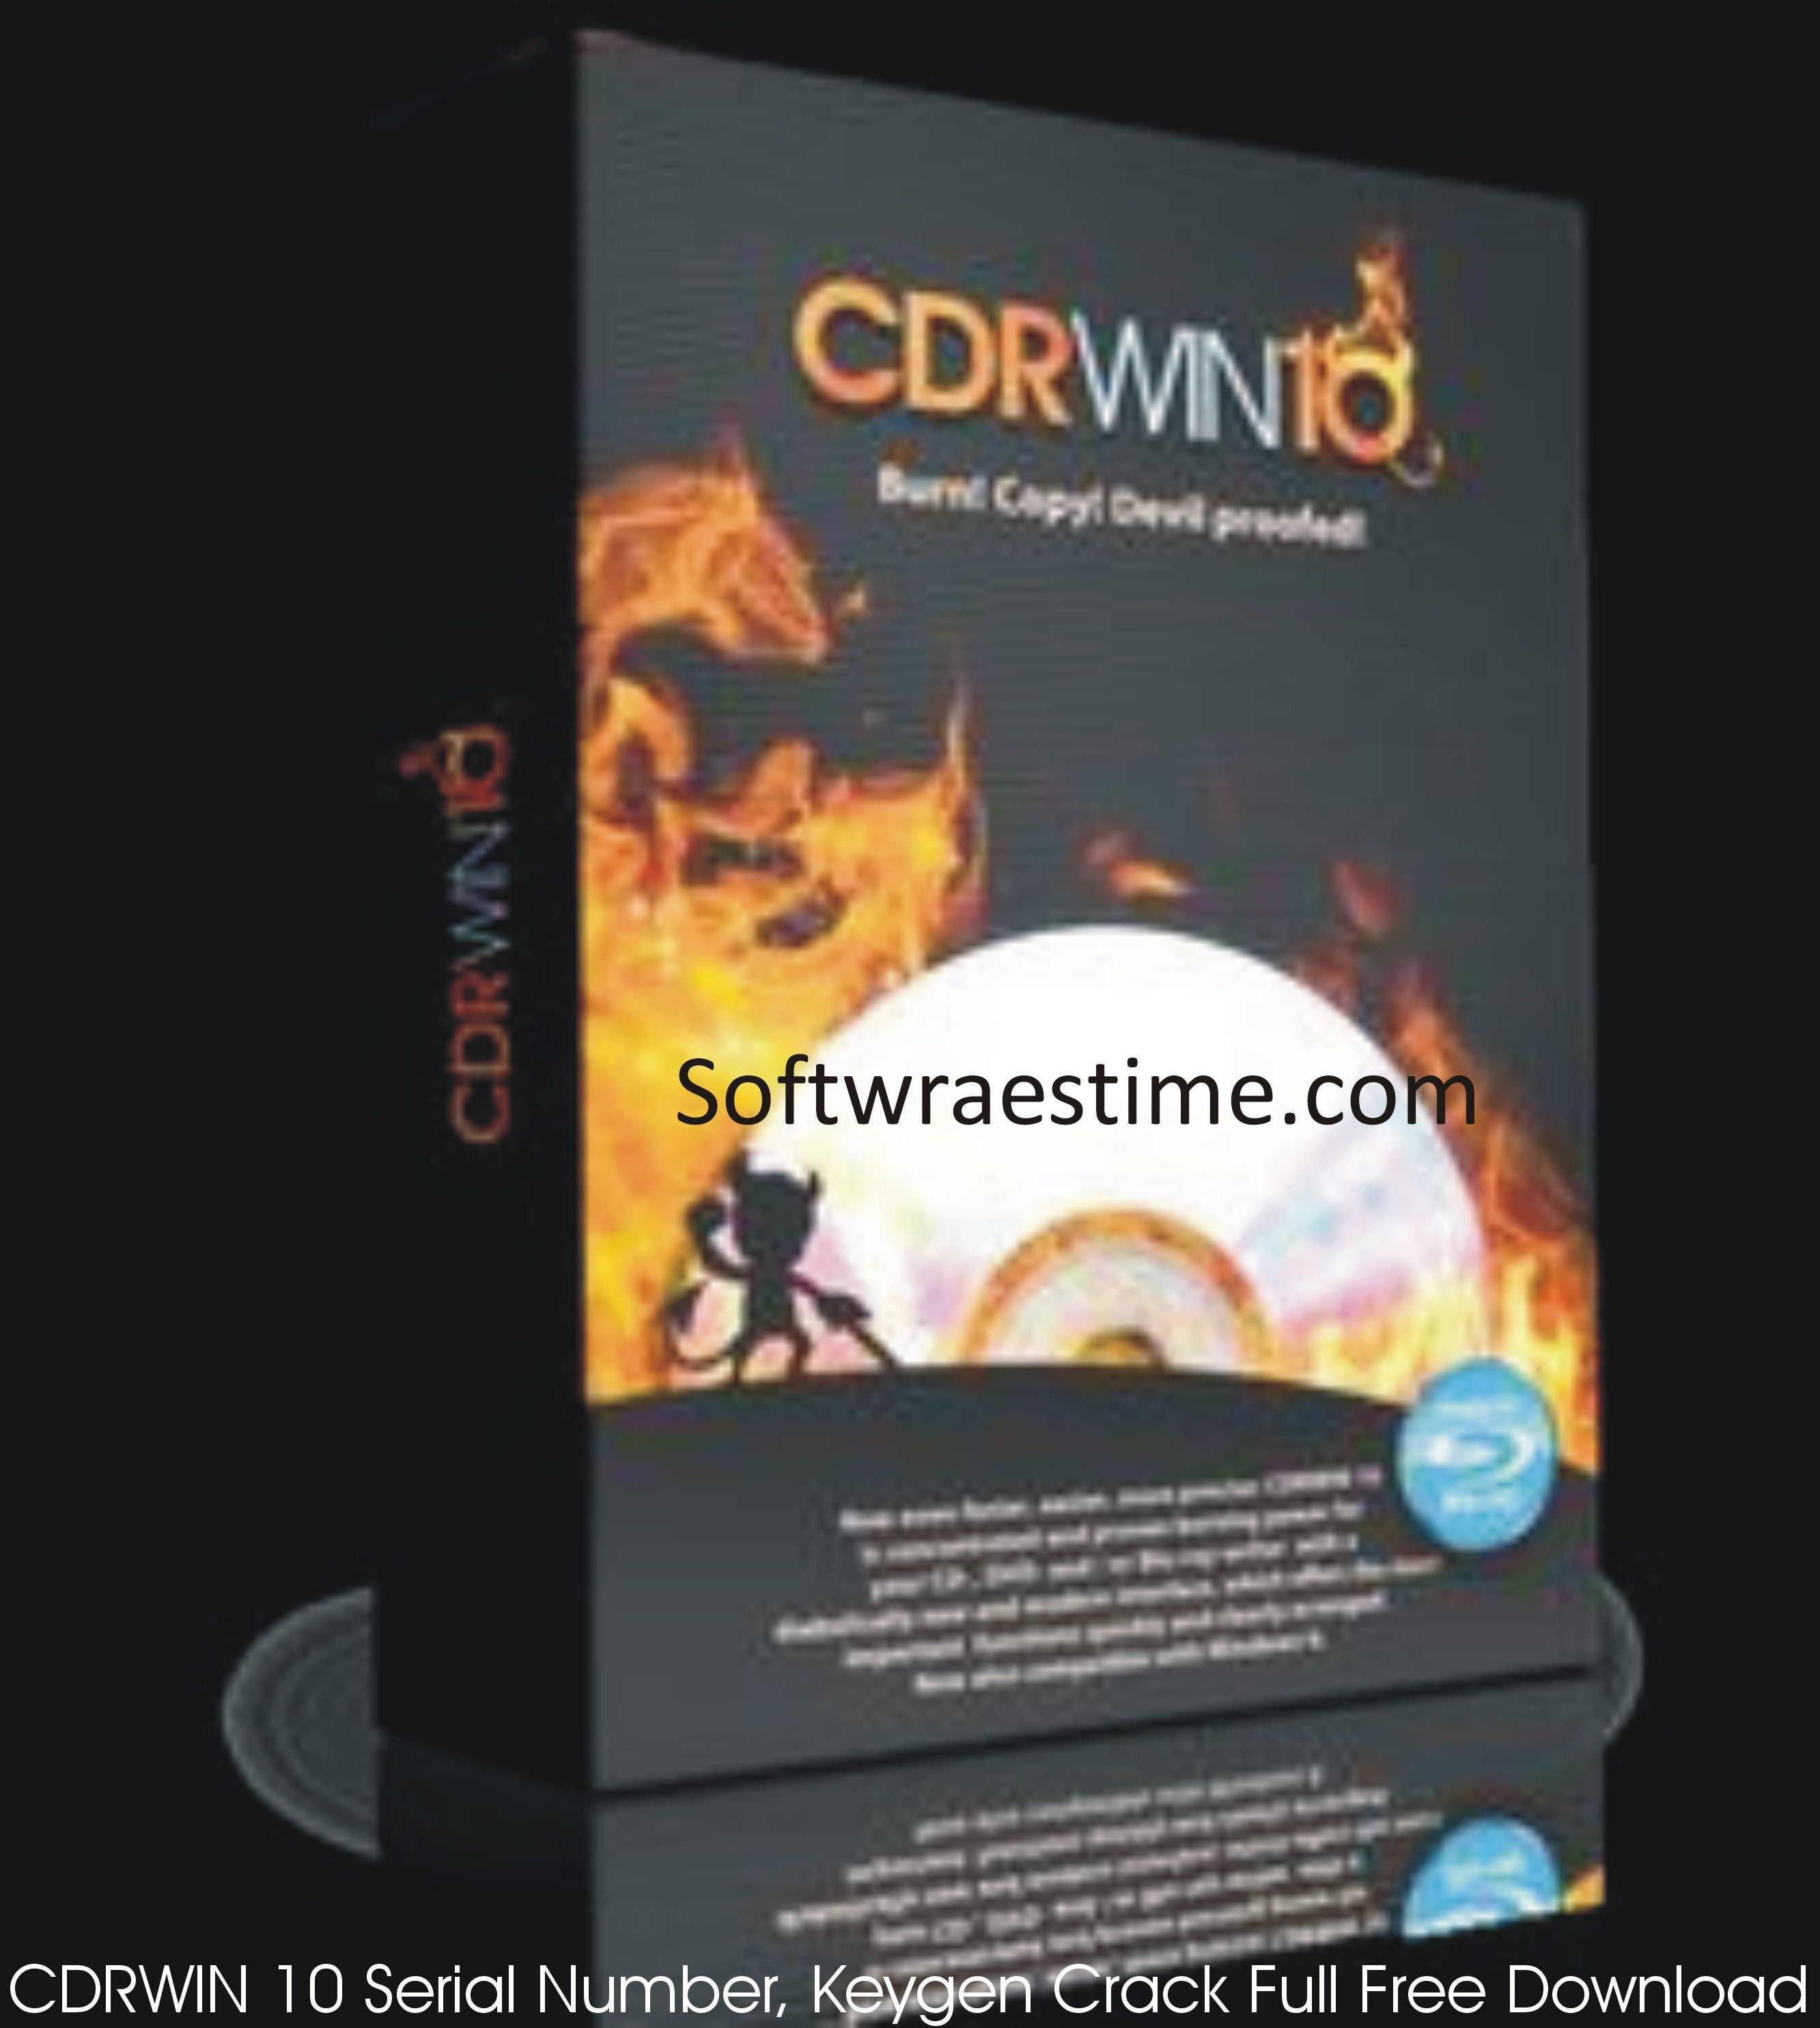 Book Cover Design Free Download Software ~ Cdrwin serial number keygen crack full free download cdrwin